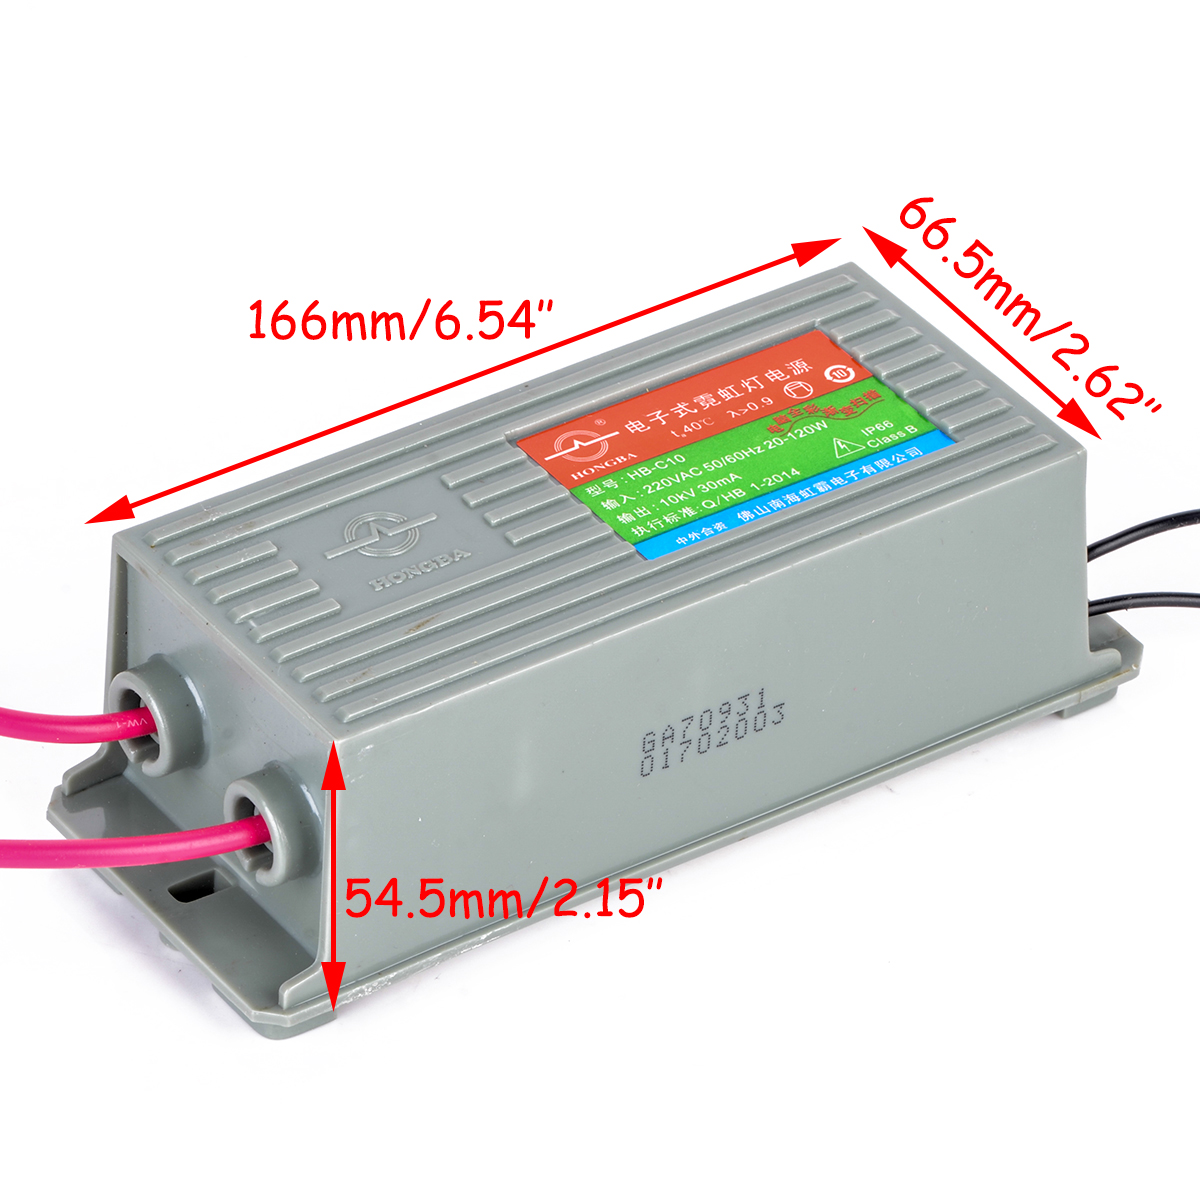 HB-C10 Electronic Transformer Neon Power Supply Rectifier 10KV 30mA 50/60Hz 20-120W with 10.5 inches Length Wire raphaelite 120w pre amp power transformer for tube amplifier rectifier